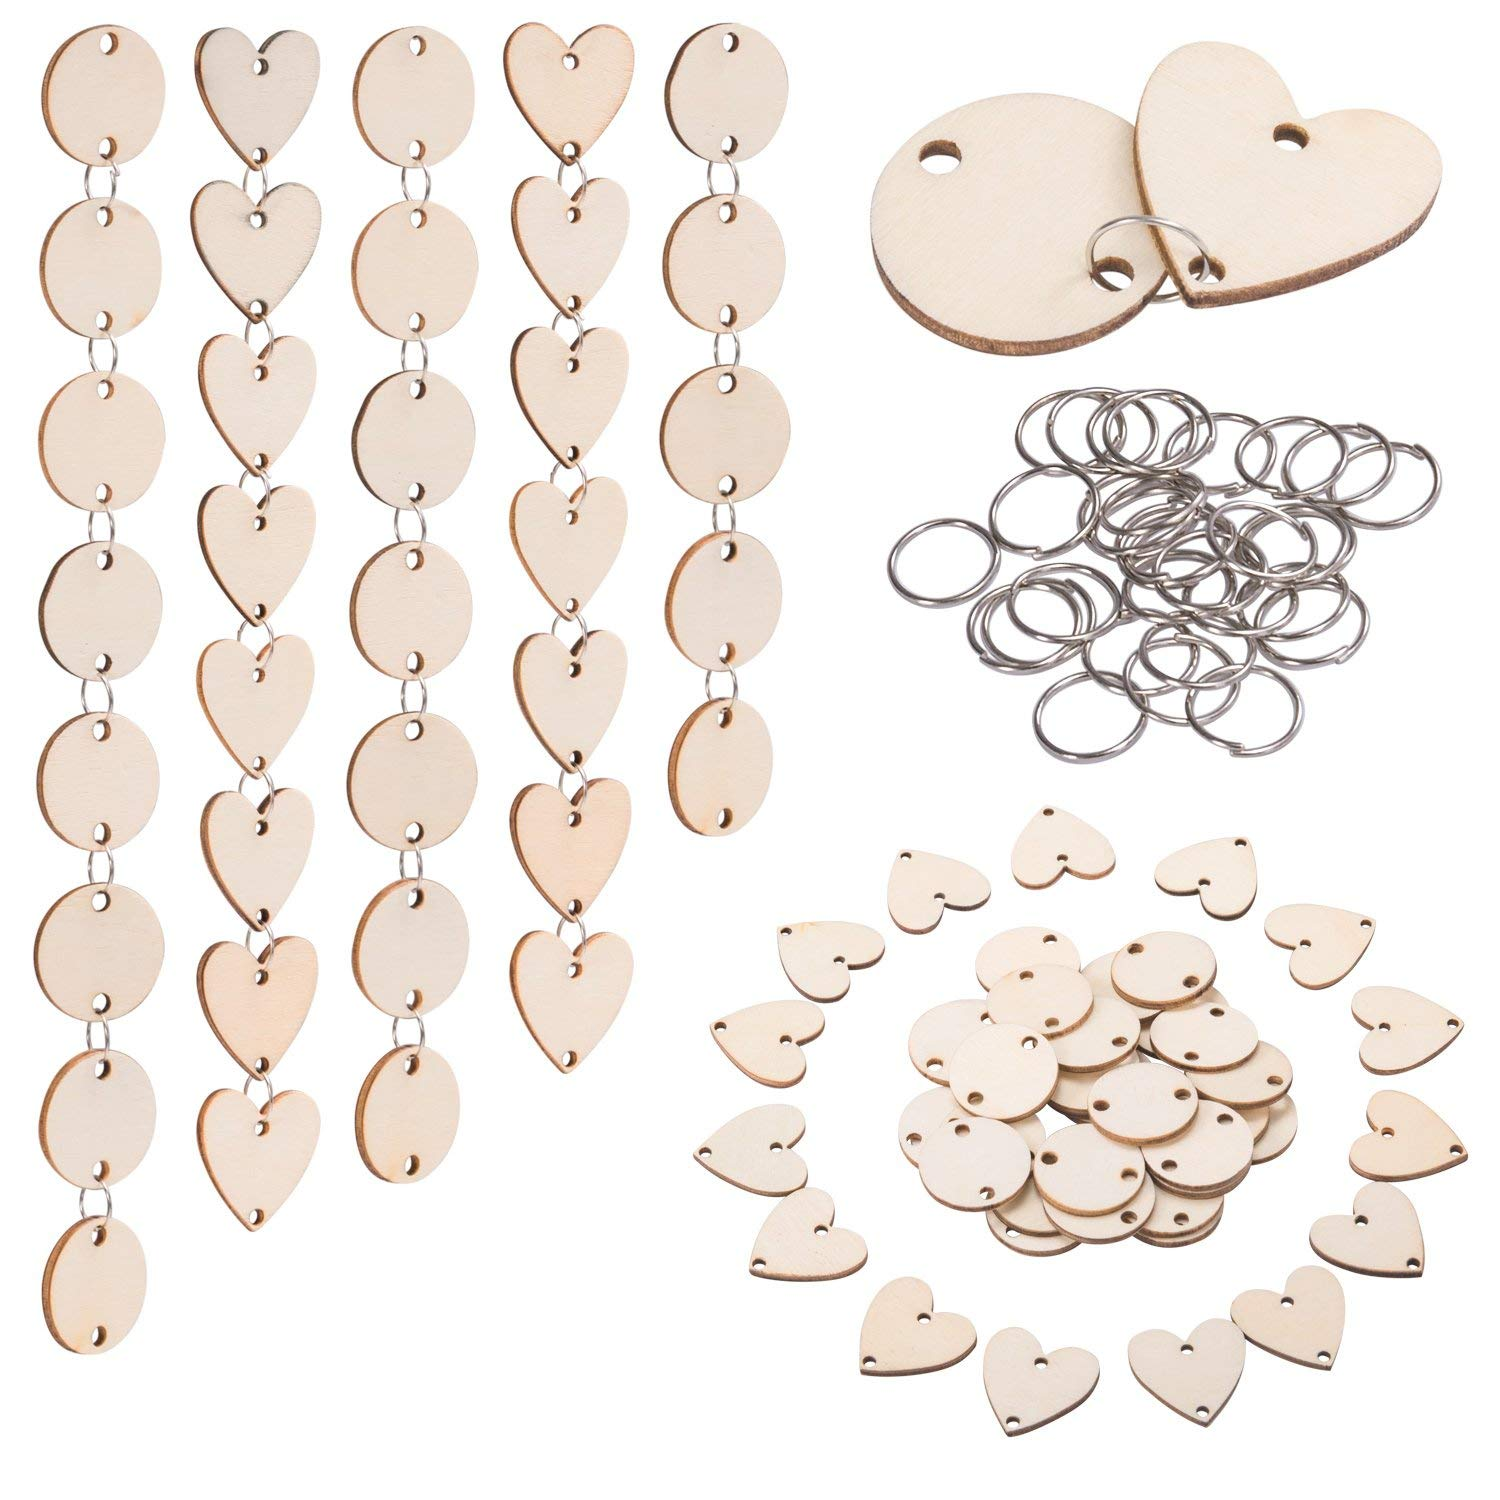 200 Pieces In Total, Wooden Circles Wooden Heart Tags With Holes And 12 Mm Rings For Birthday Boards, Valentine, Chore Boards,